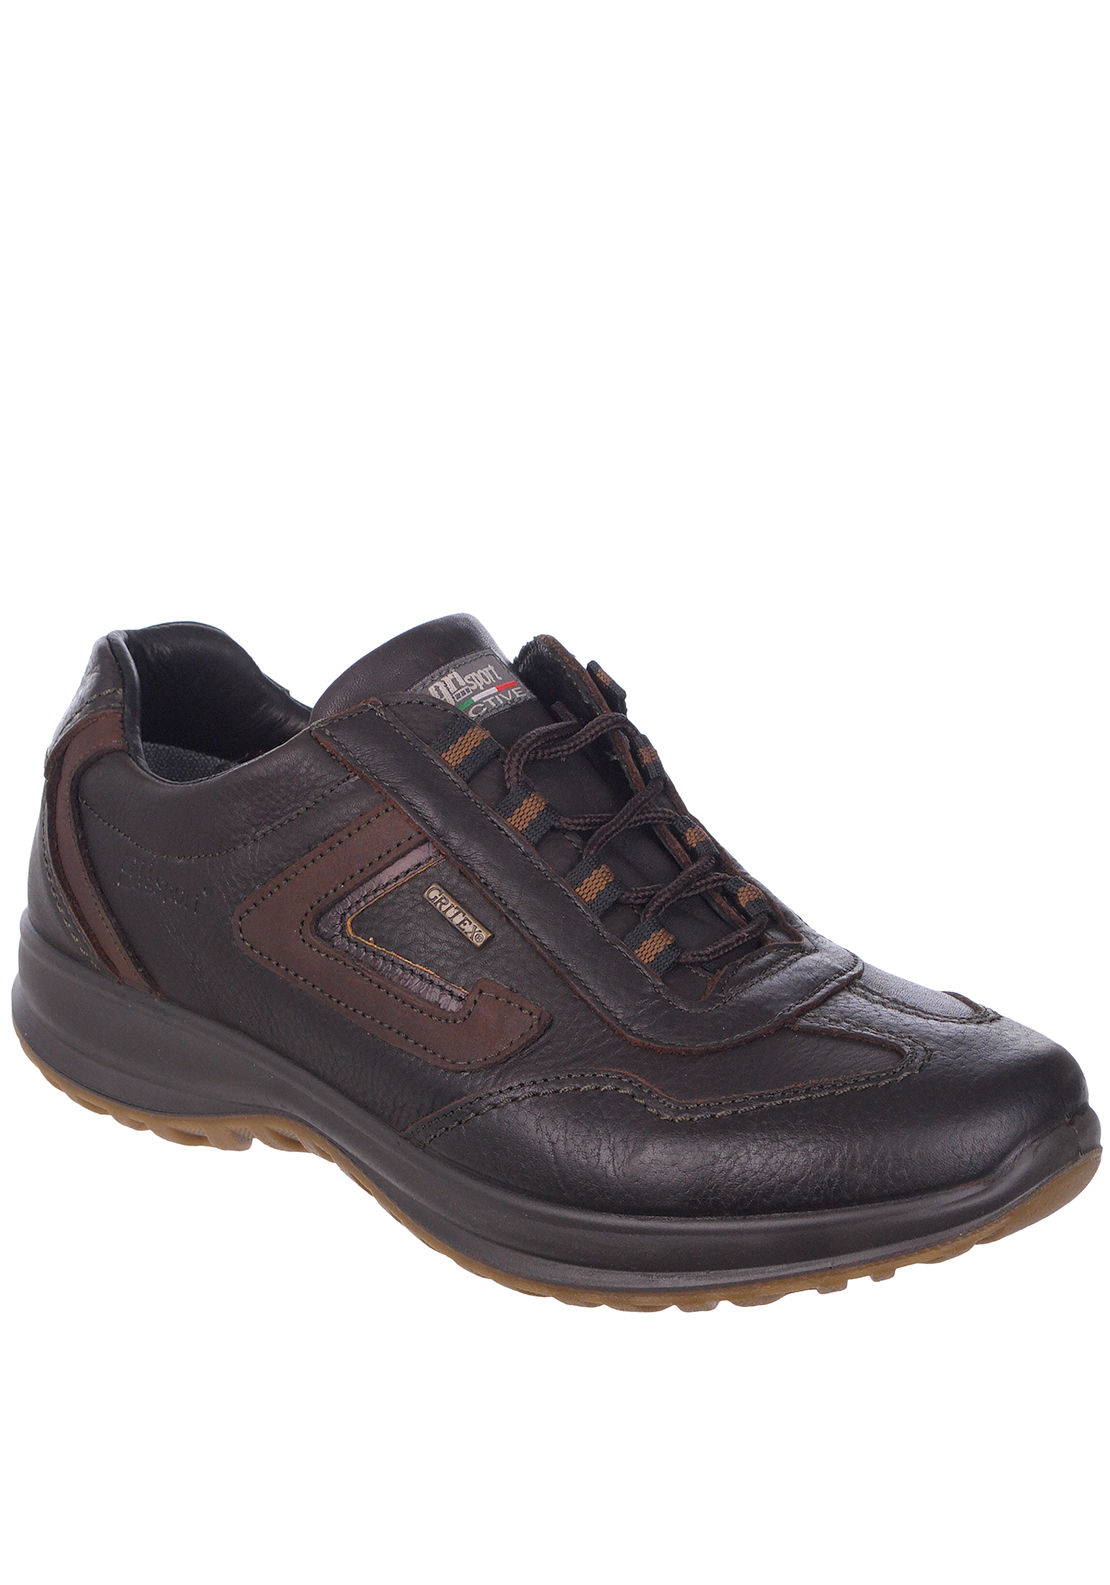 Grisport Mens Hamilton Leather Walking Shoe, Brown